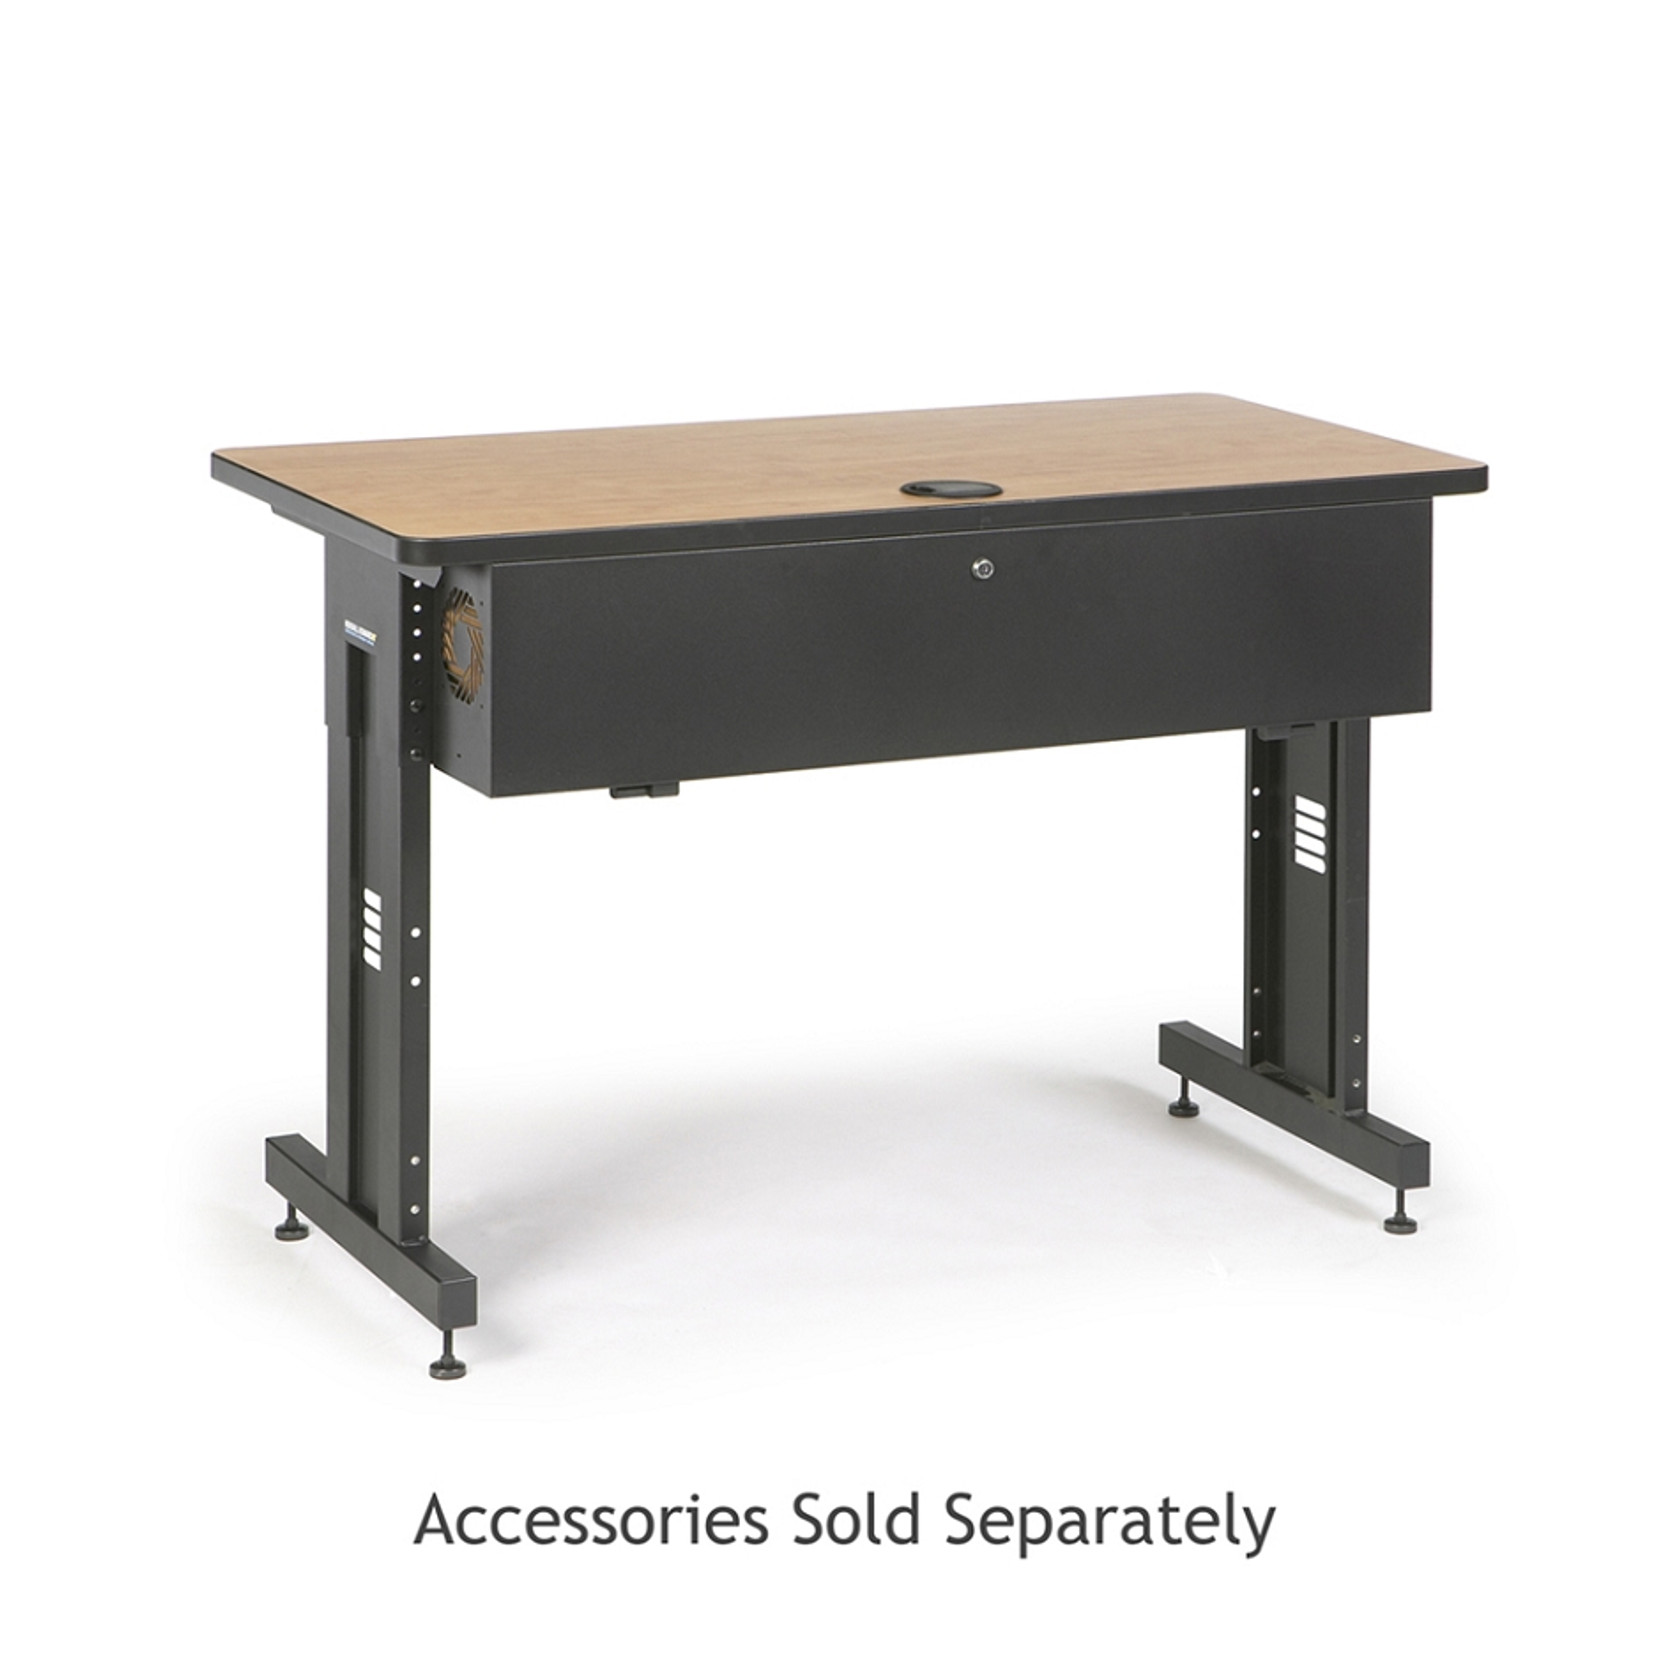 wholesale showroom table laminated suppliers room training meeting for folding alibaba